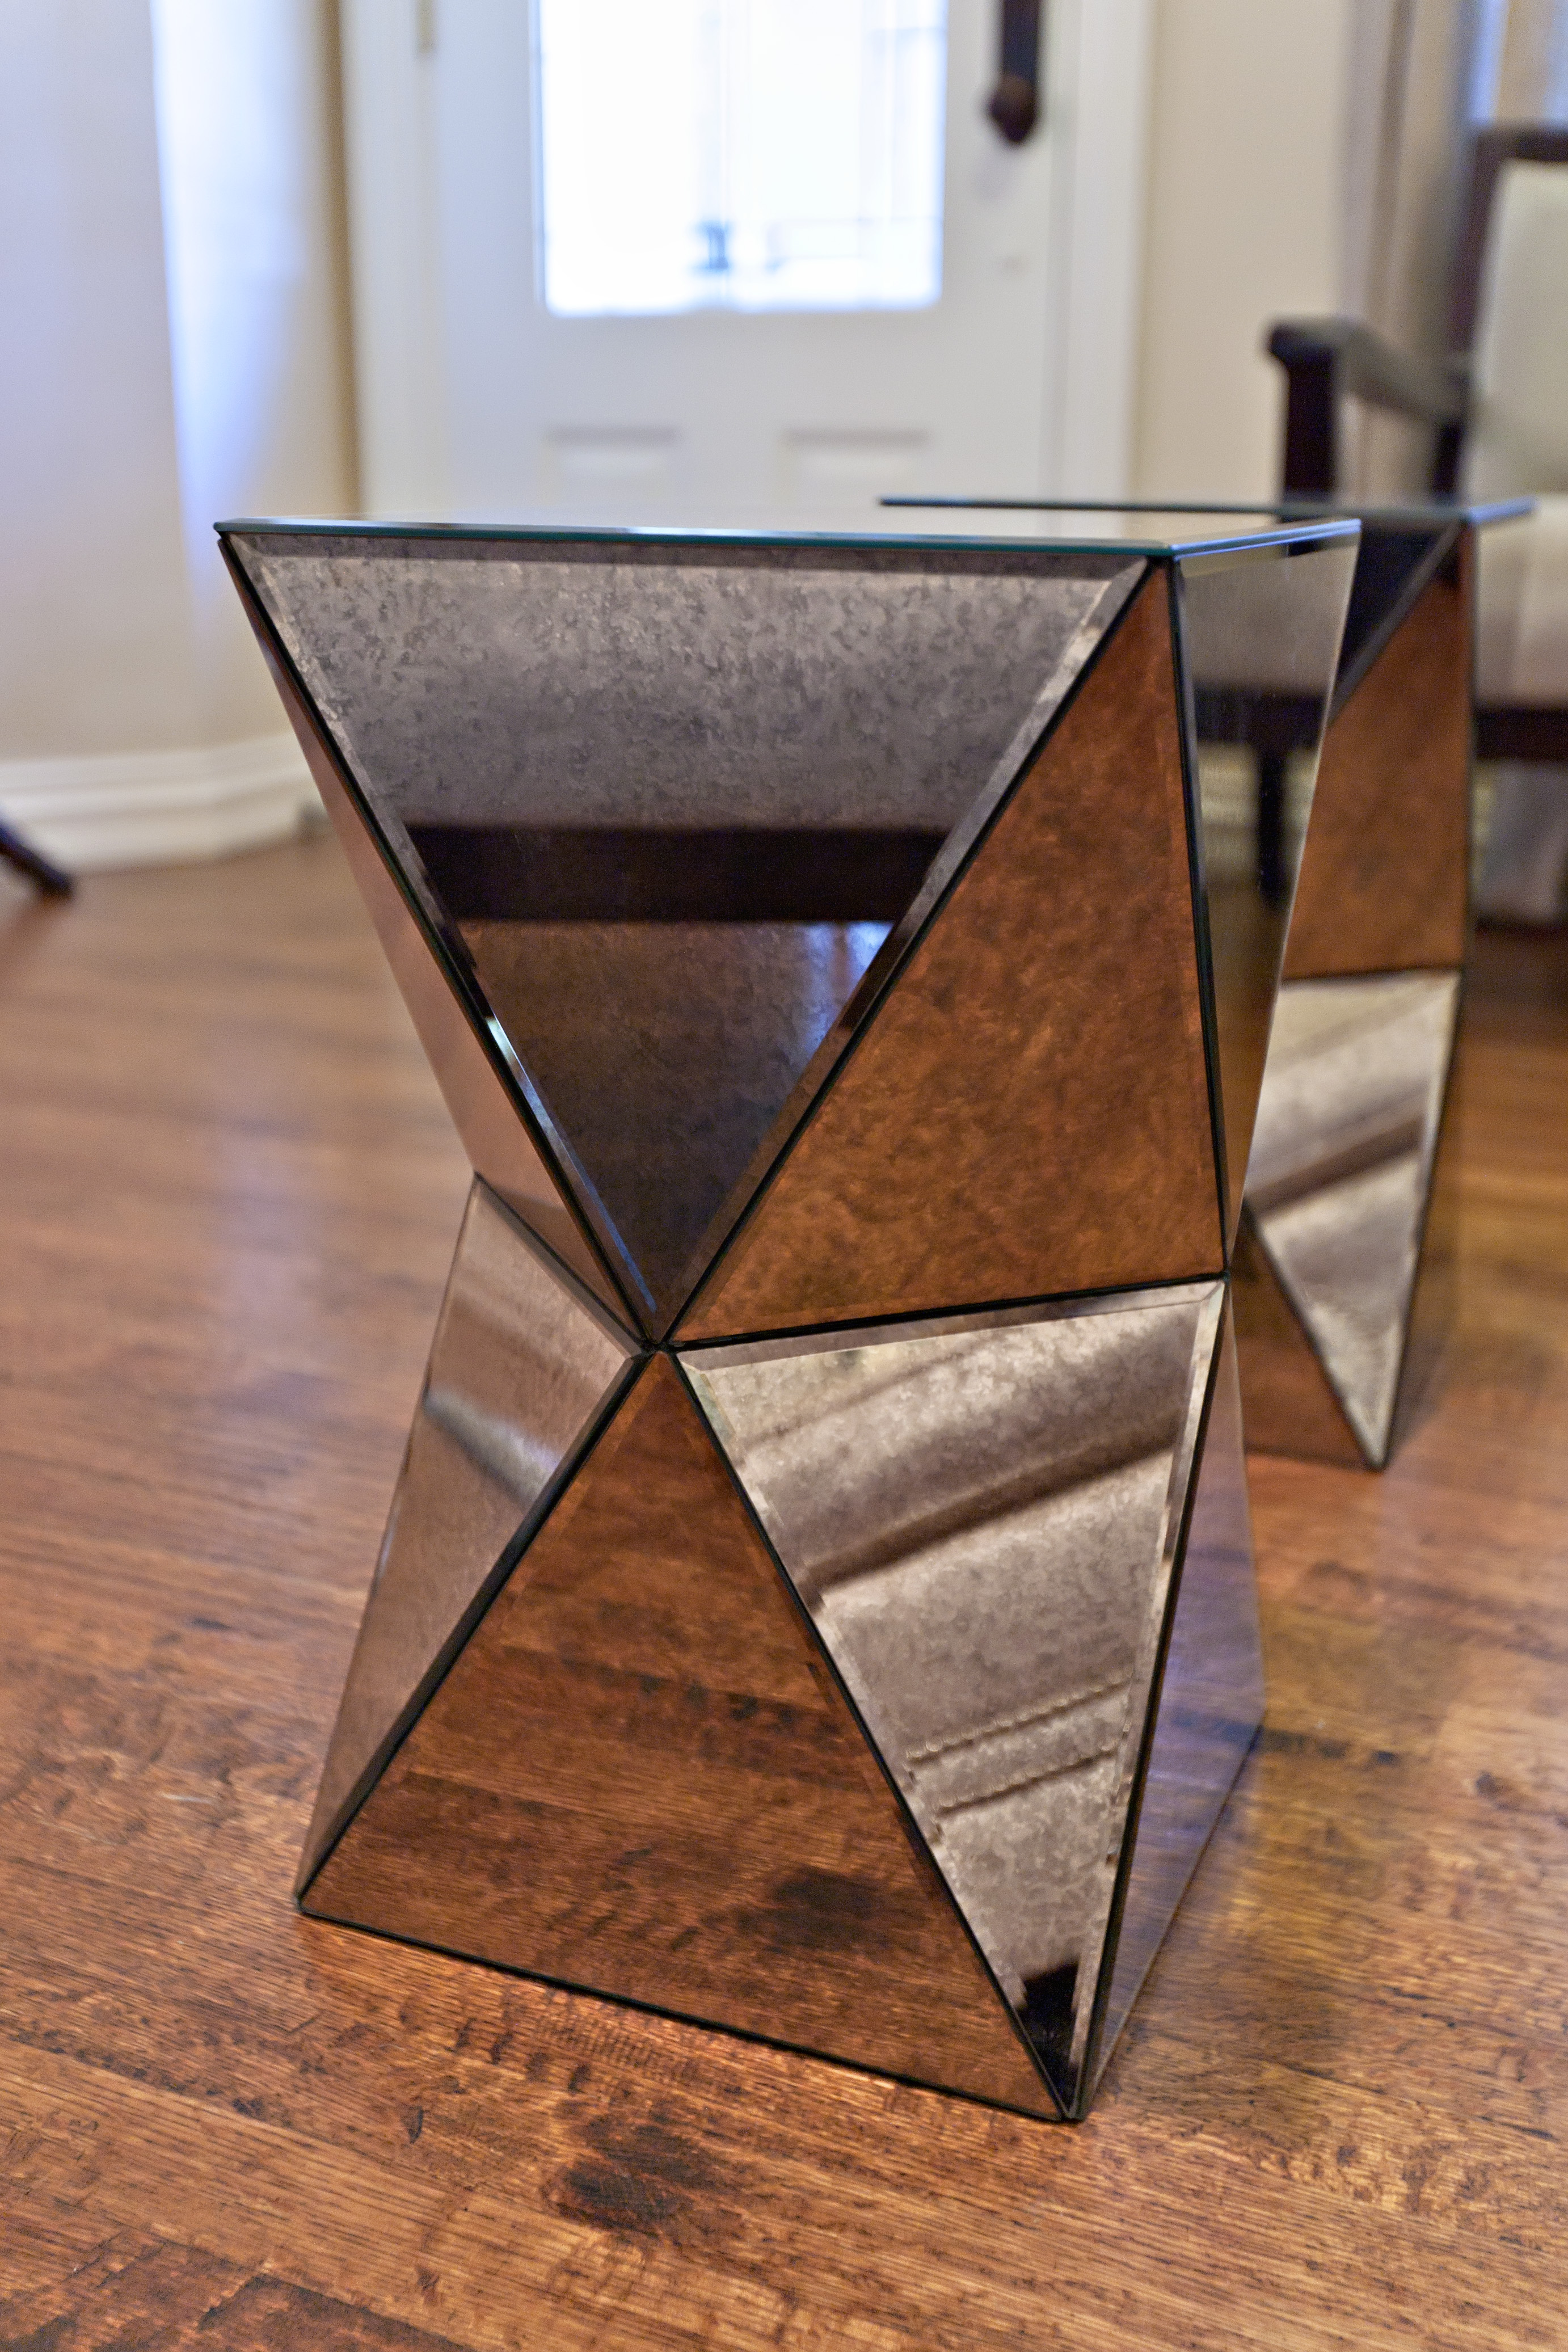 West Elm Faceted Mirrored Side Tables - West elm mirrored side table